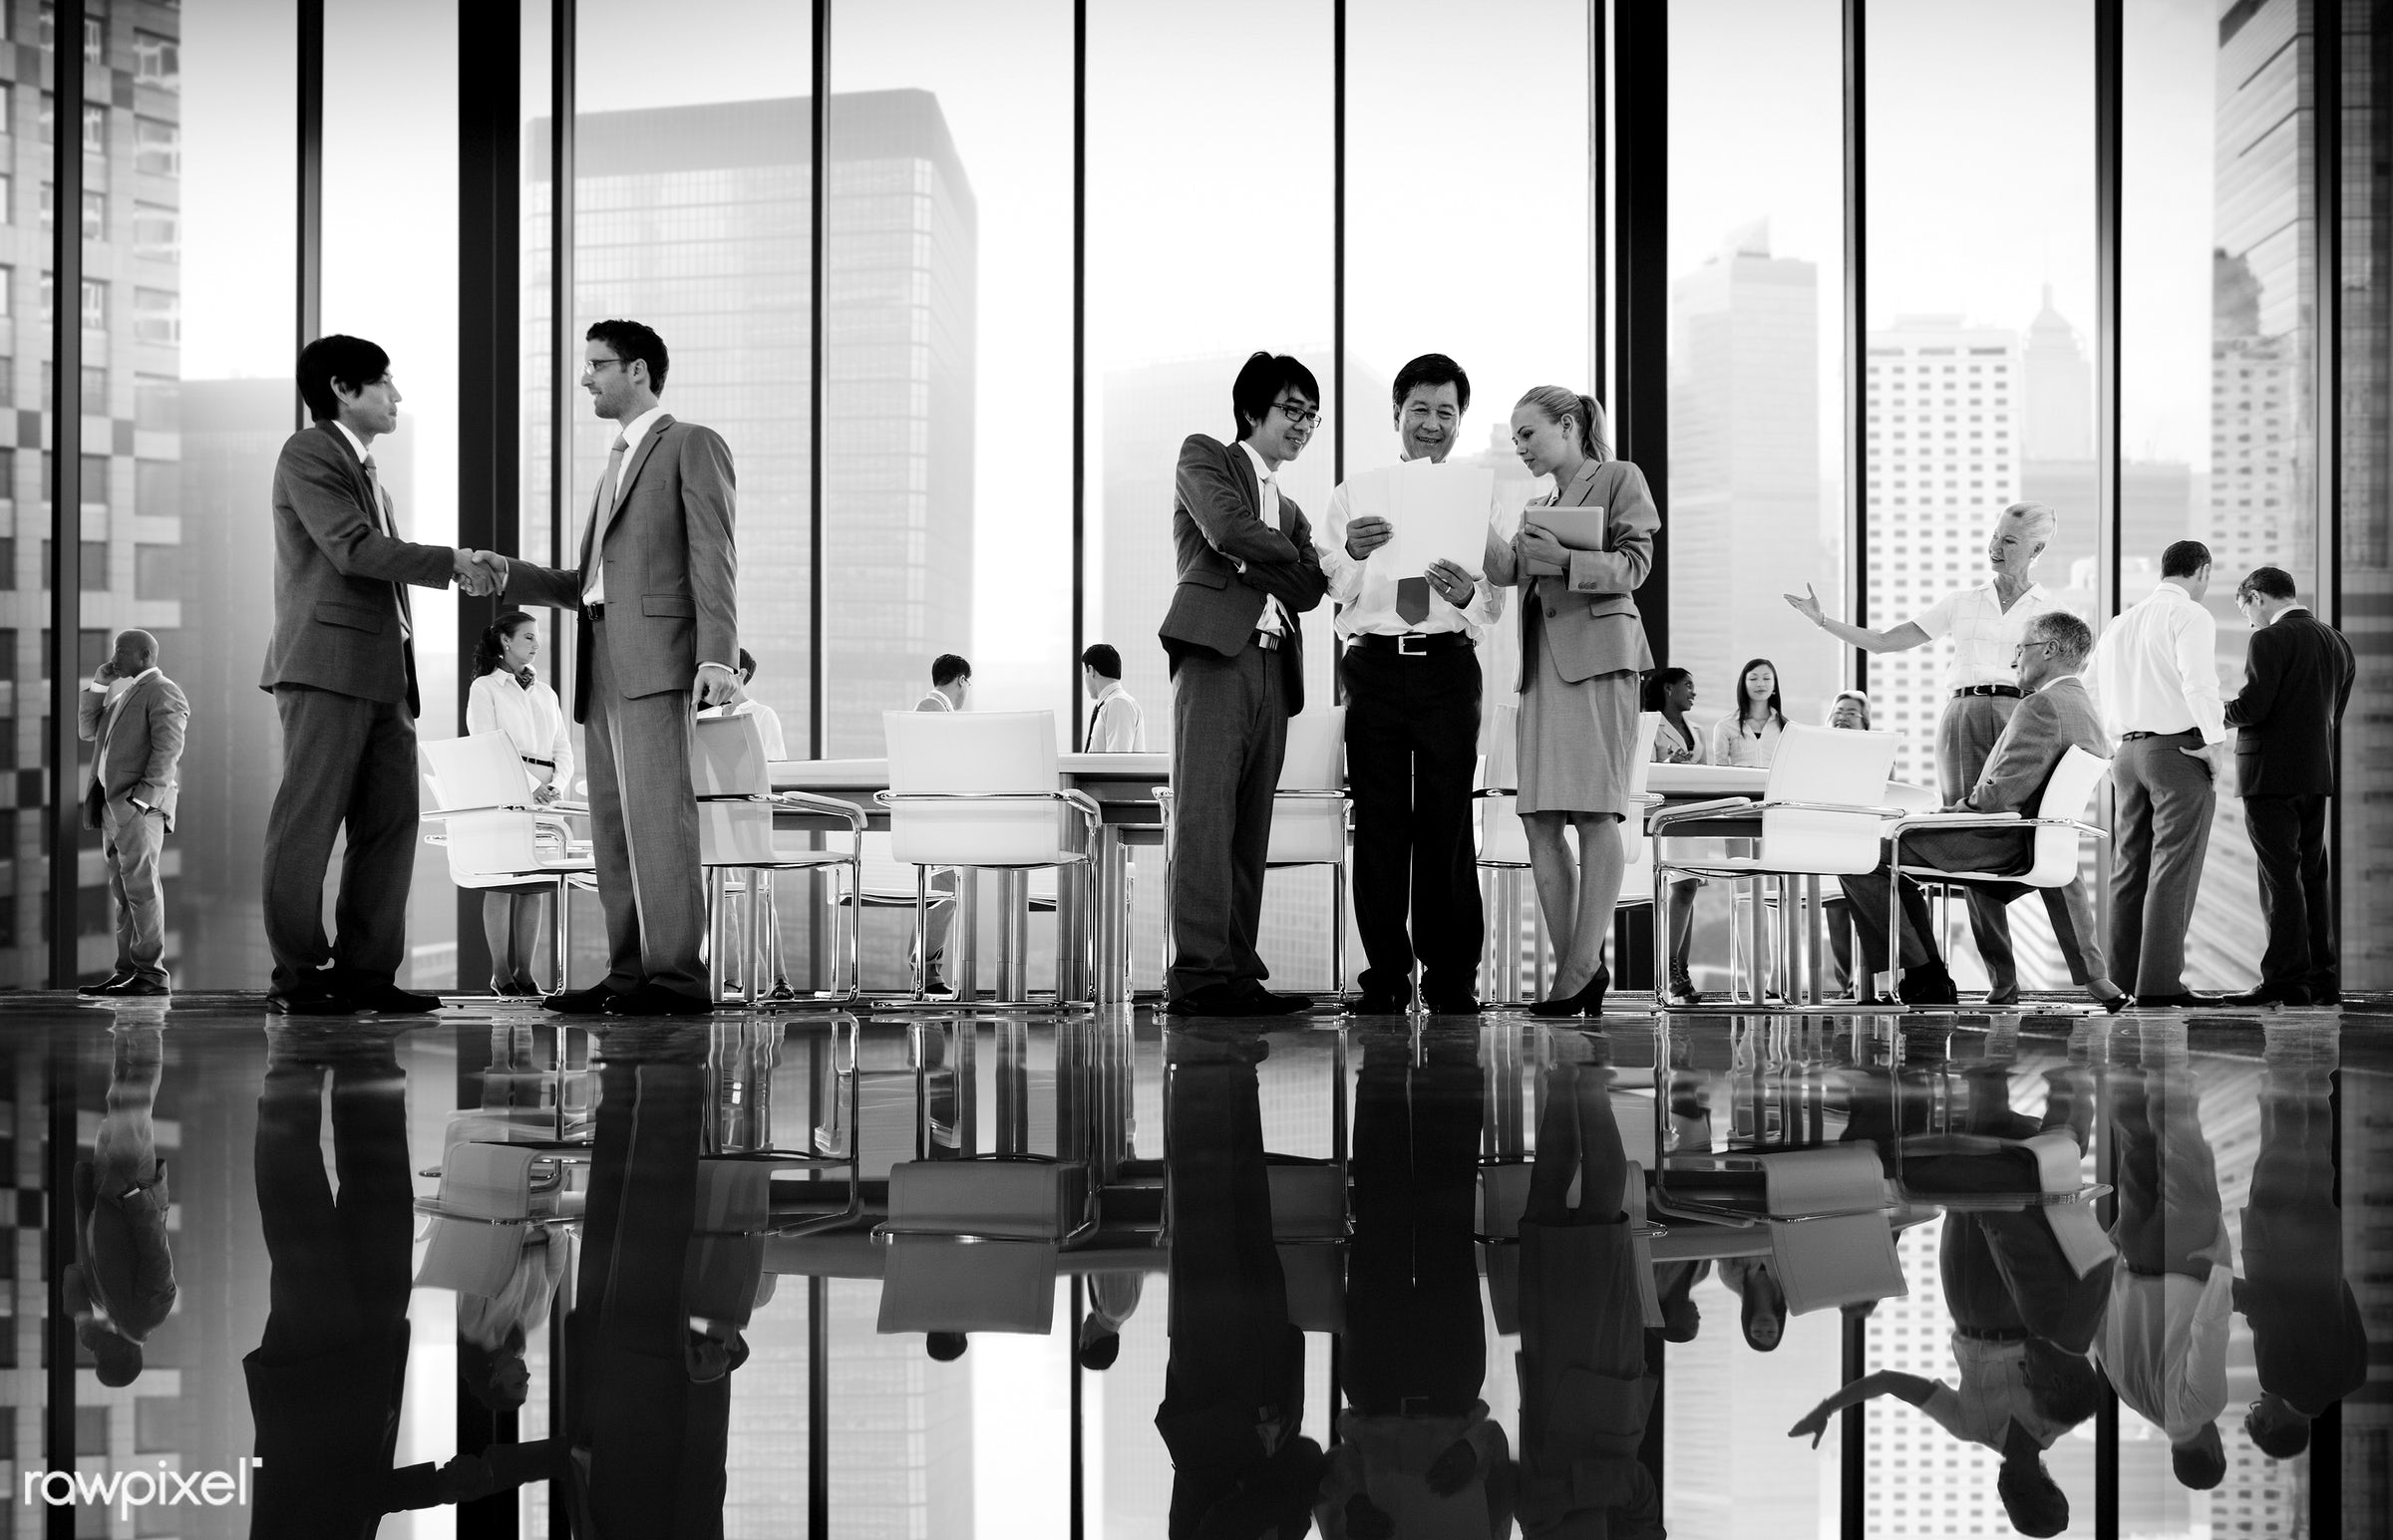 agreement, board room, brainstorming, building, business, business people, businessmen, businesswomen, city, cityscape,...